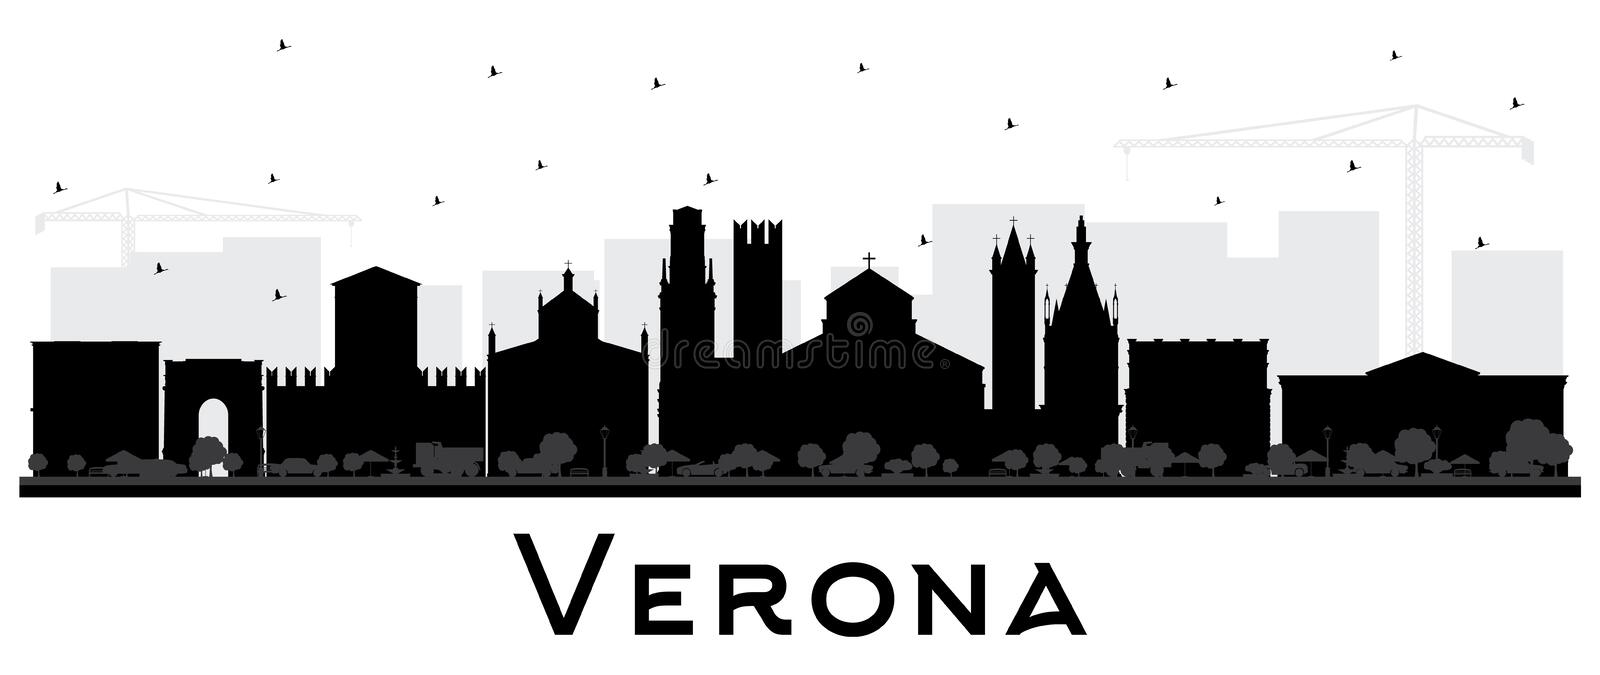 Verona Italy City Skyline Silhouette with Black Buildings Isolated on White. Vector Illustration. Business Travel and Tourism Concept with Historic royalty free illustration